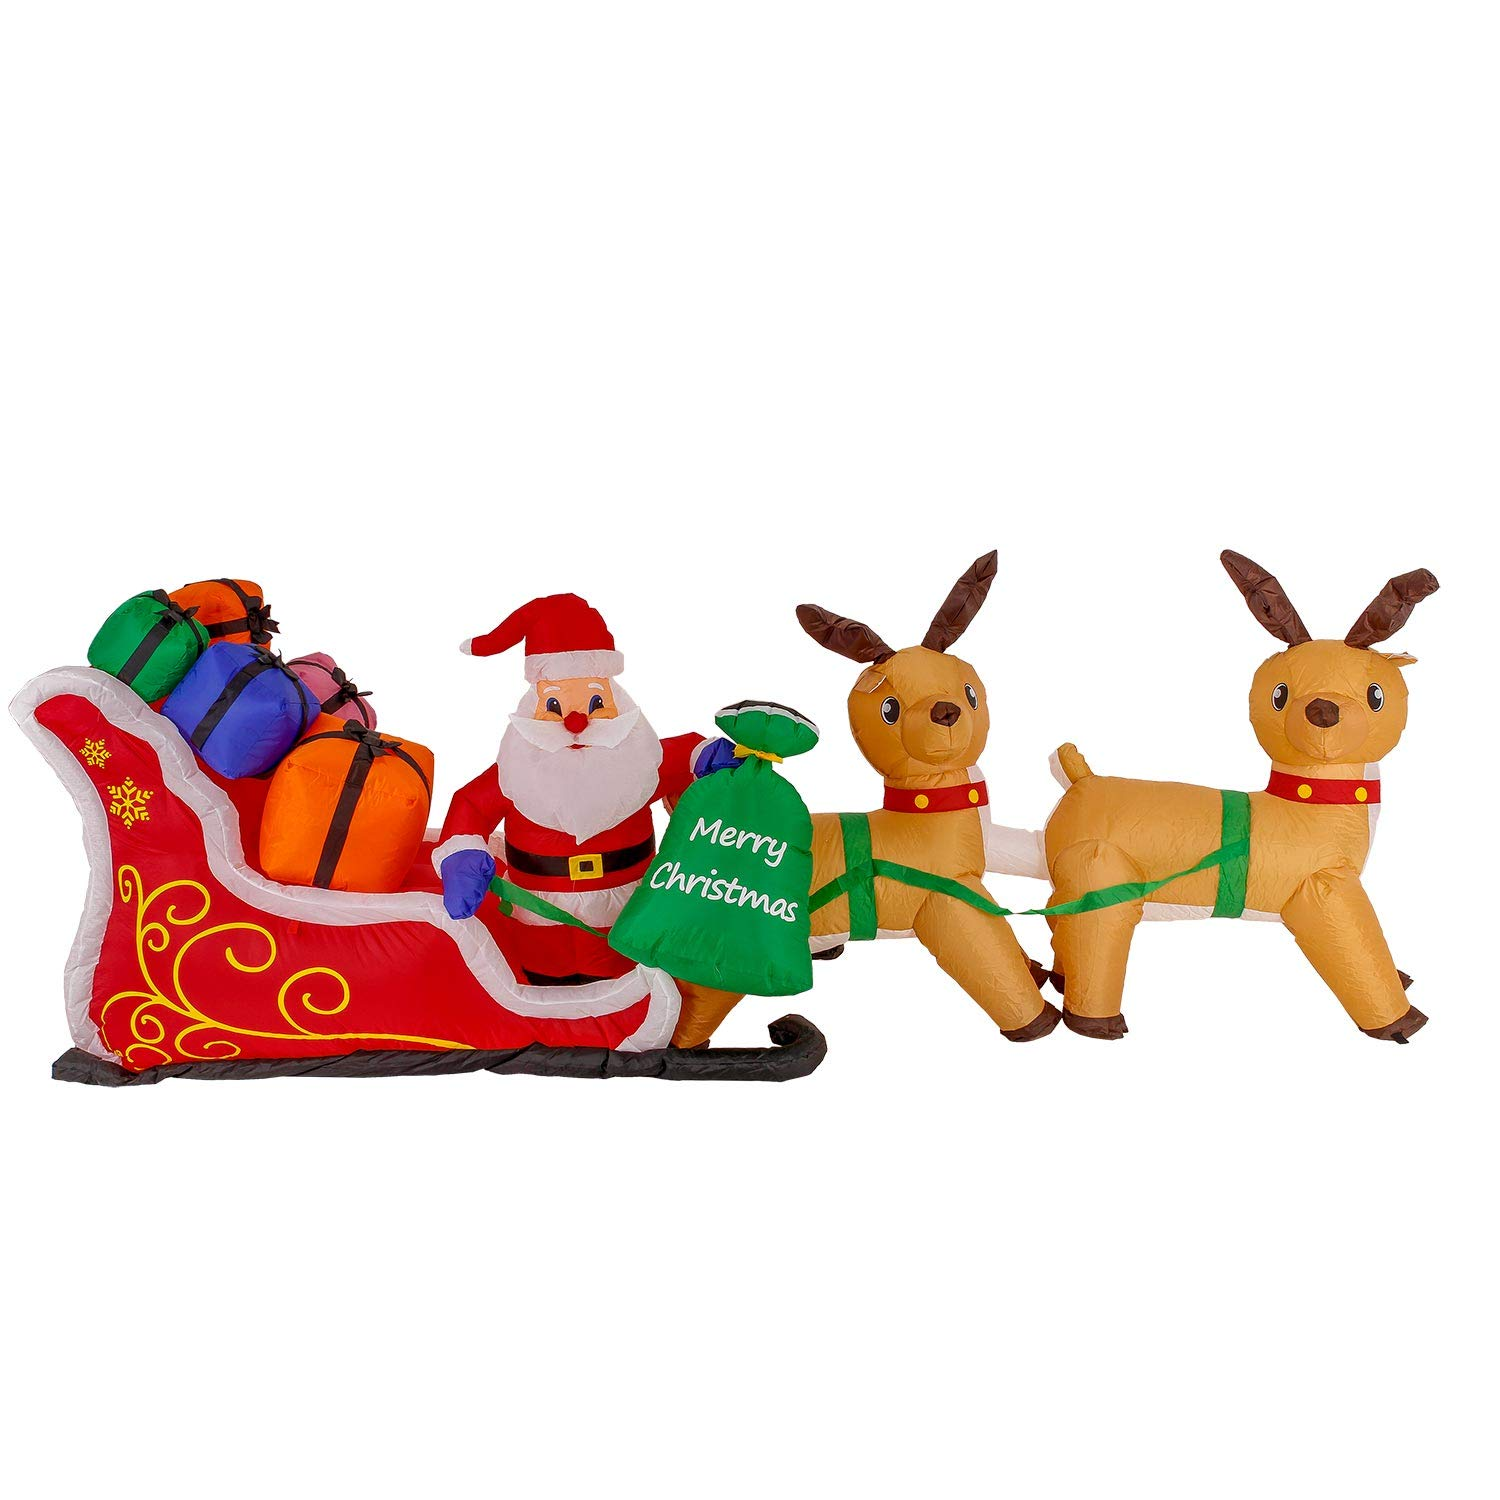 Christmas Masters Giant 10 Foot Long Inflatable Santa Claus On Sleigh with Reindeer and His Gift Bag with Presents LED Lights Indoor Outdoor Yard Lawn Decoration - Cute Fun Xmas Holiday Party Blow Up